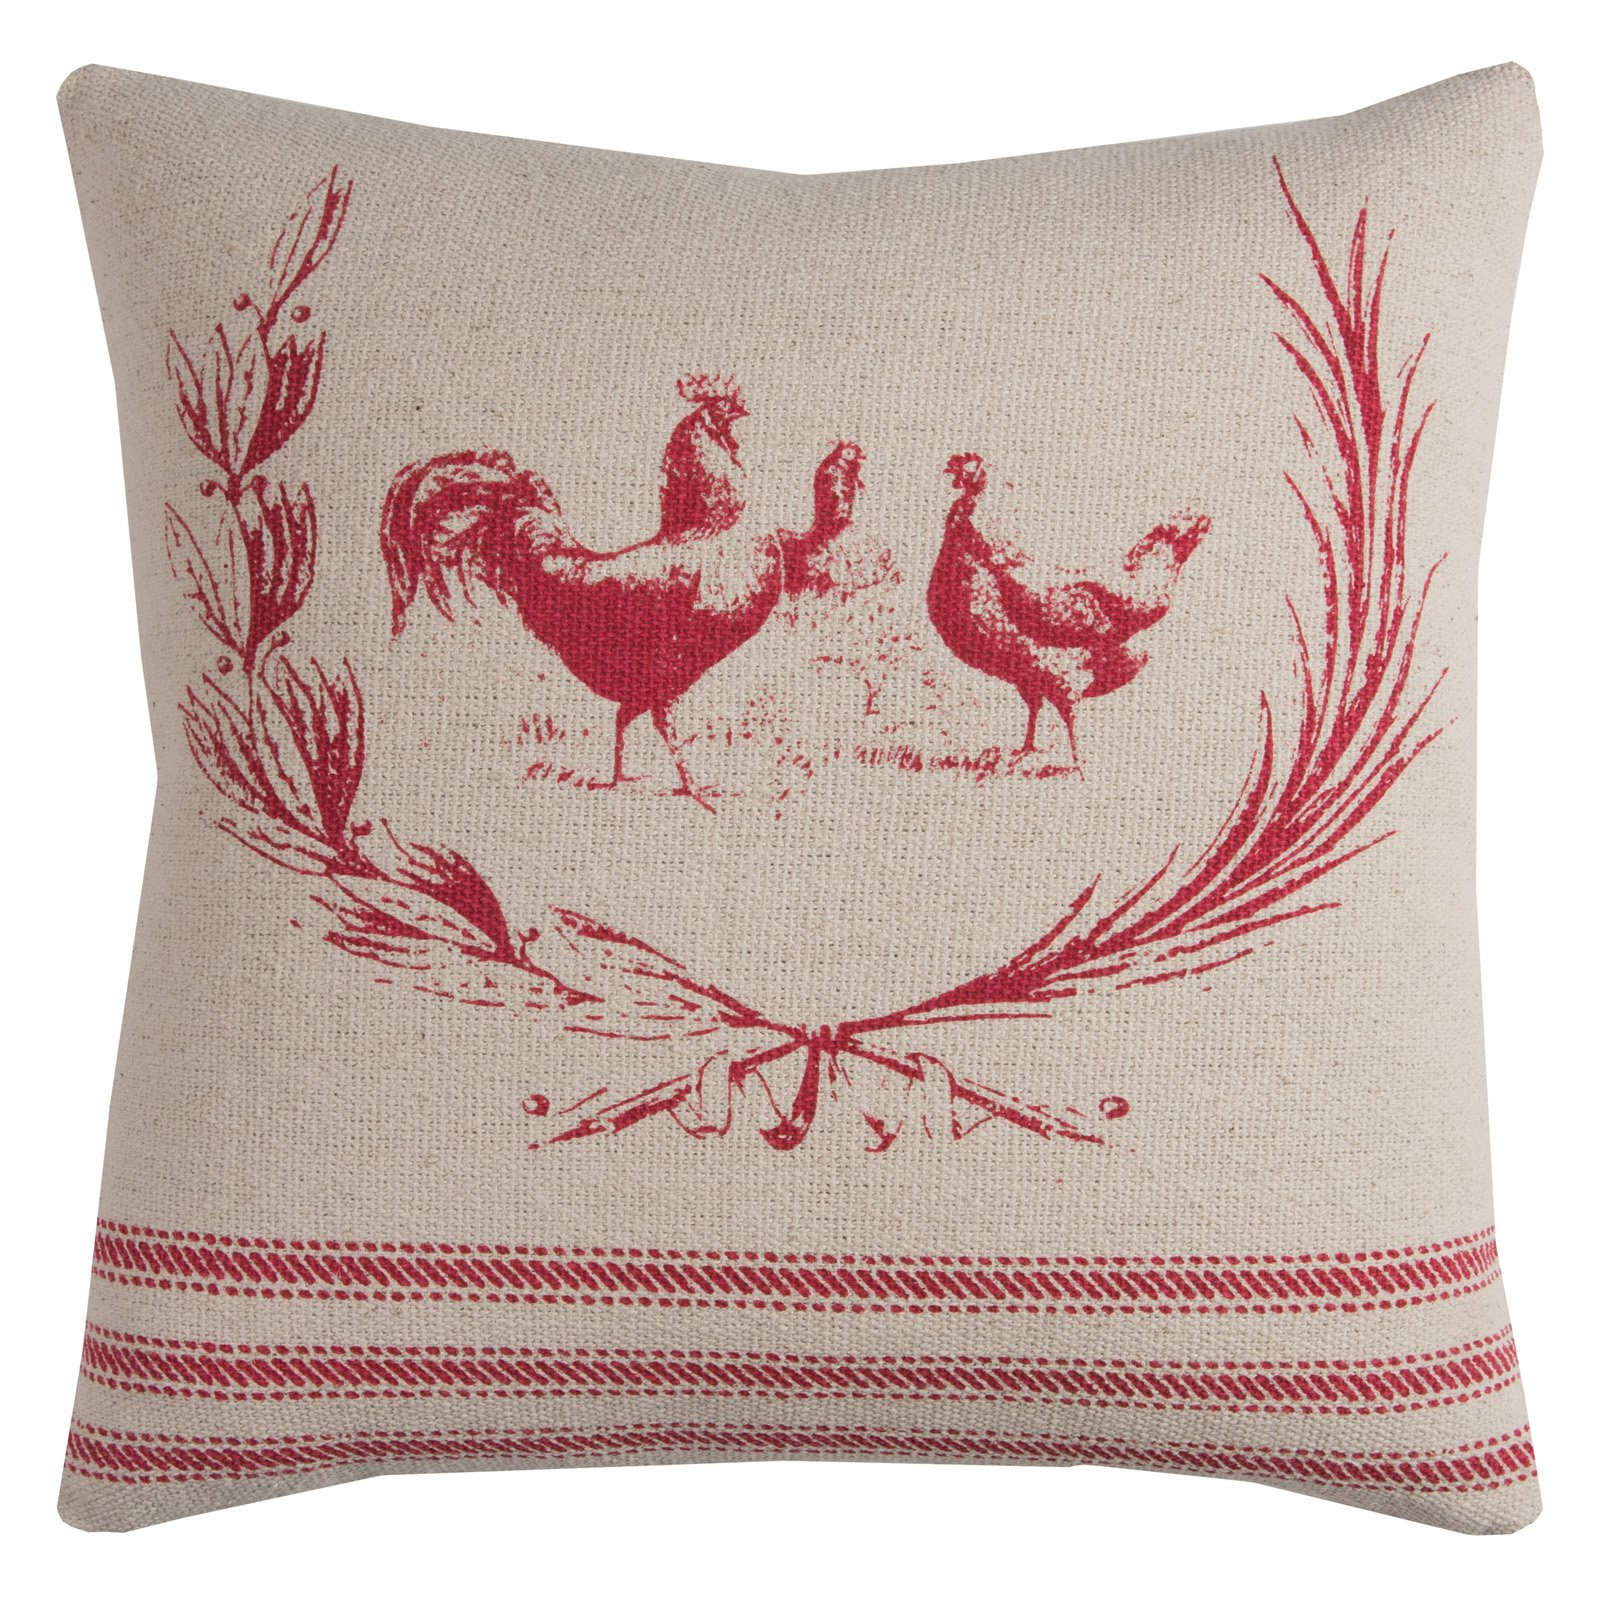 "Rizzy Home Farmhouse Rooster Cotton With Zipper Closer Decorative Throw Pillow, 20"" x 20"", Red"